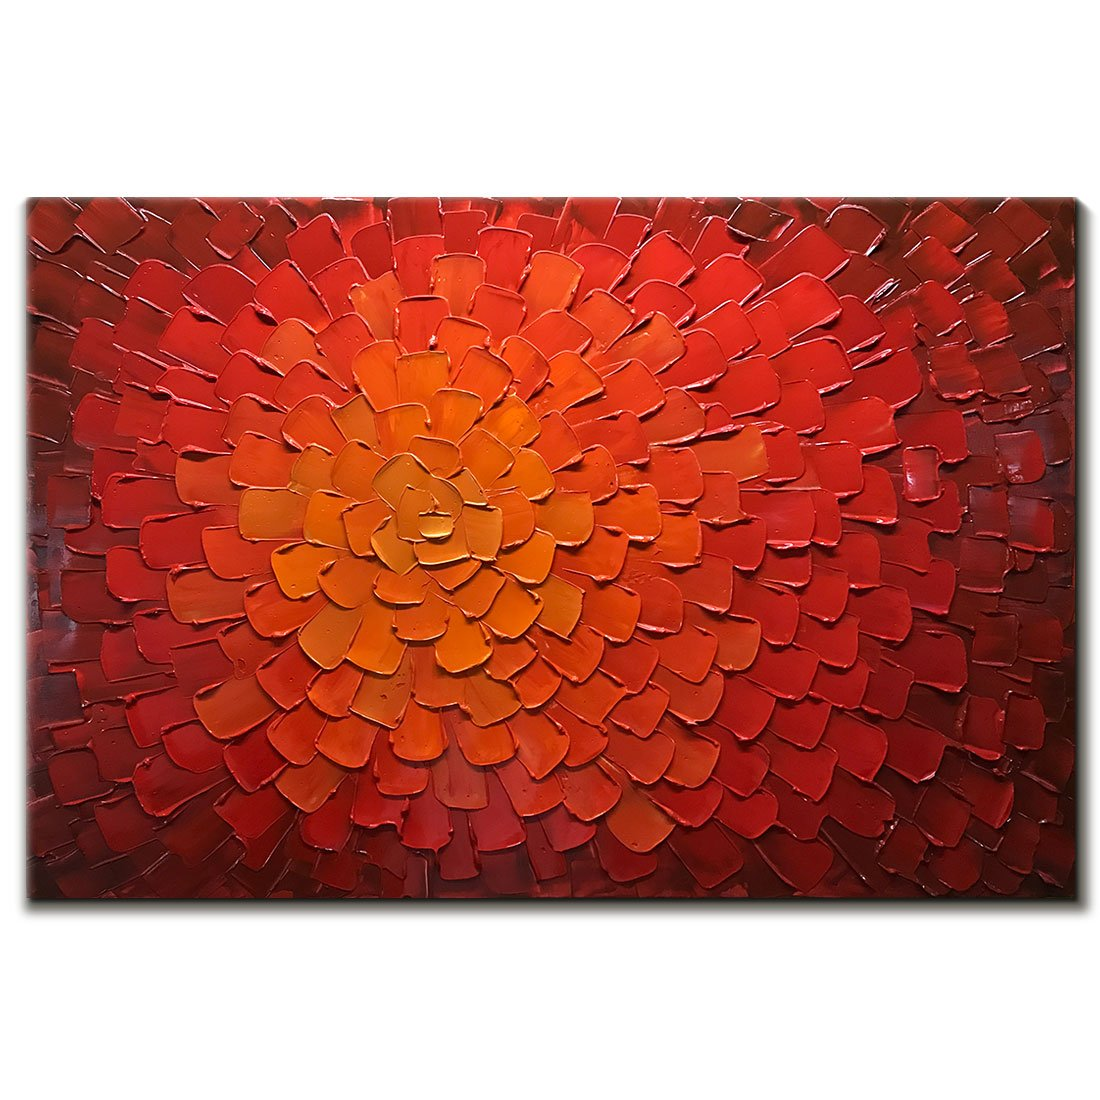 V-inspire Paintings, 24x36 inch Oil Hand Paintings Modern Framed Art 3D Hand-Painted Abstract Artwork Red Flowers Pictures on Canvas Wall Art Ready to Hang for Living Room Bedroom Home Decorations